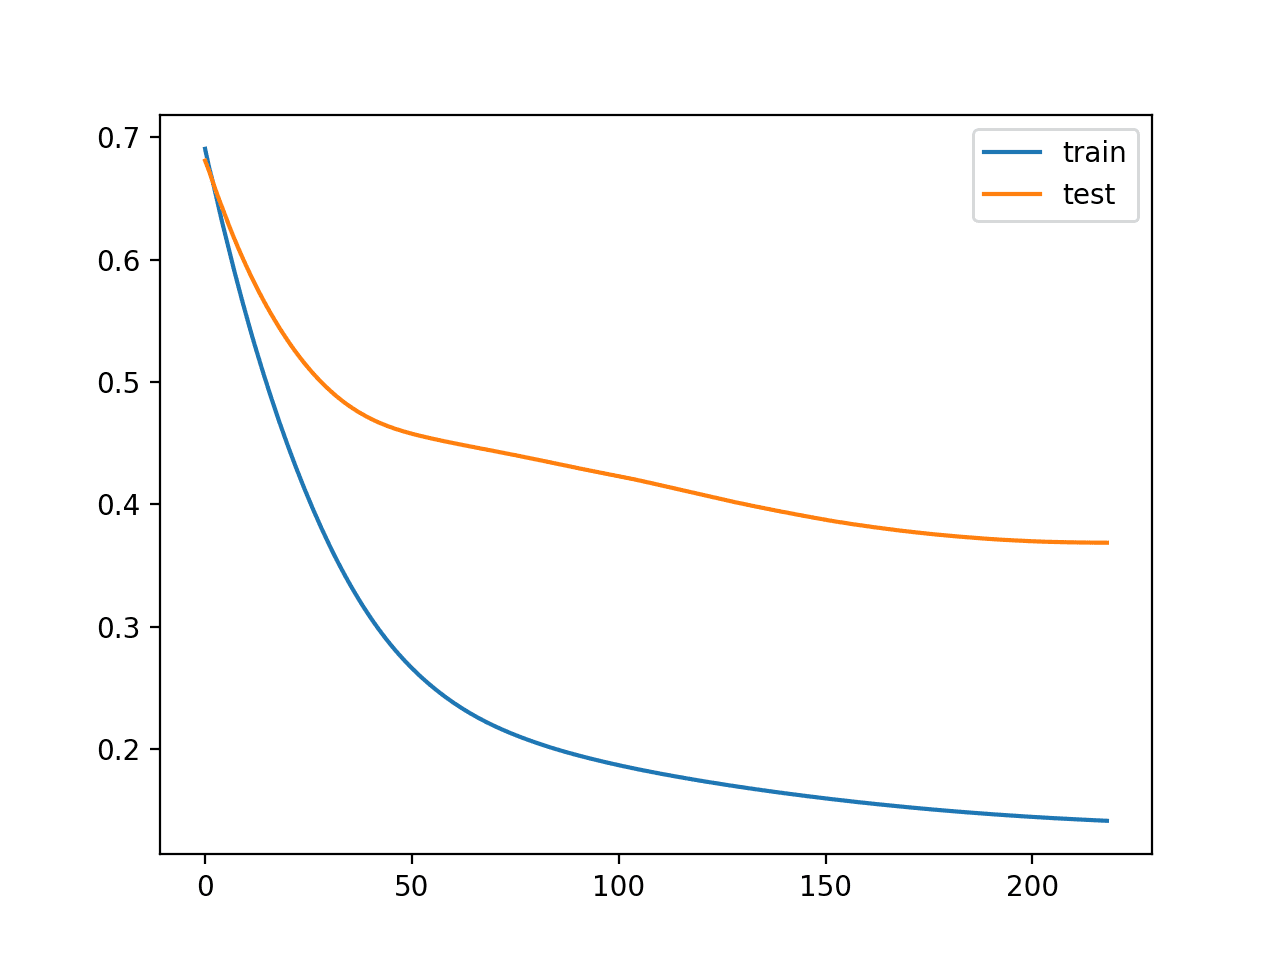 Line Plot of Train and Test Loss During Training With Simple Early Stopping